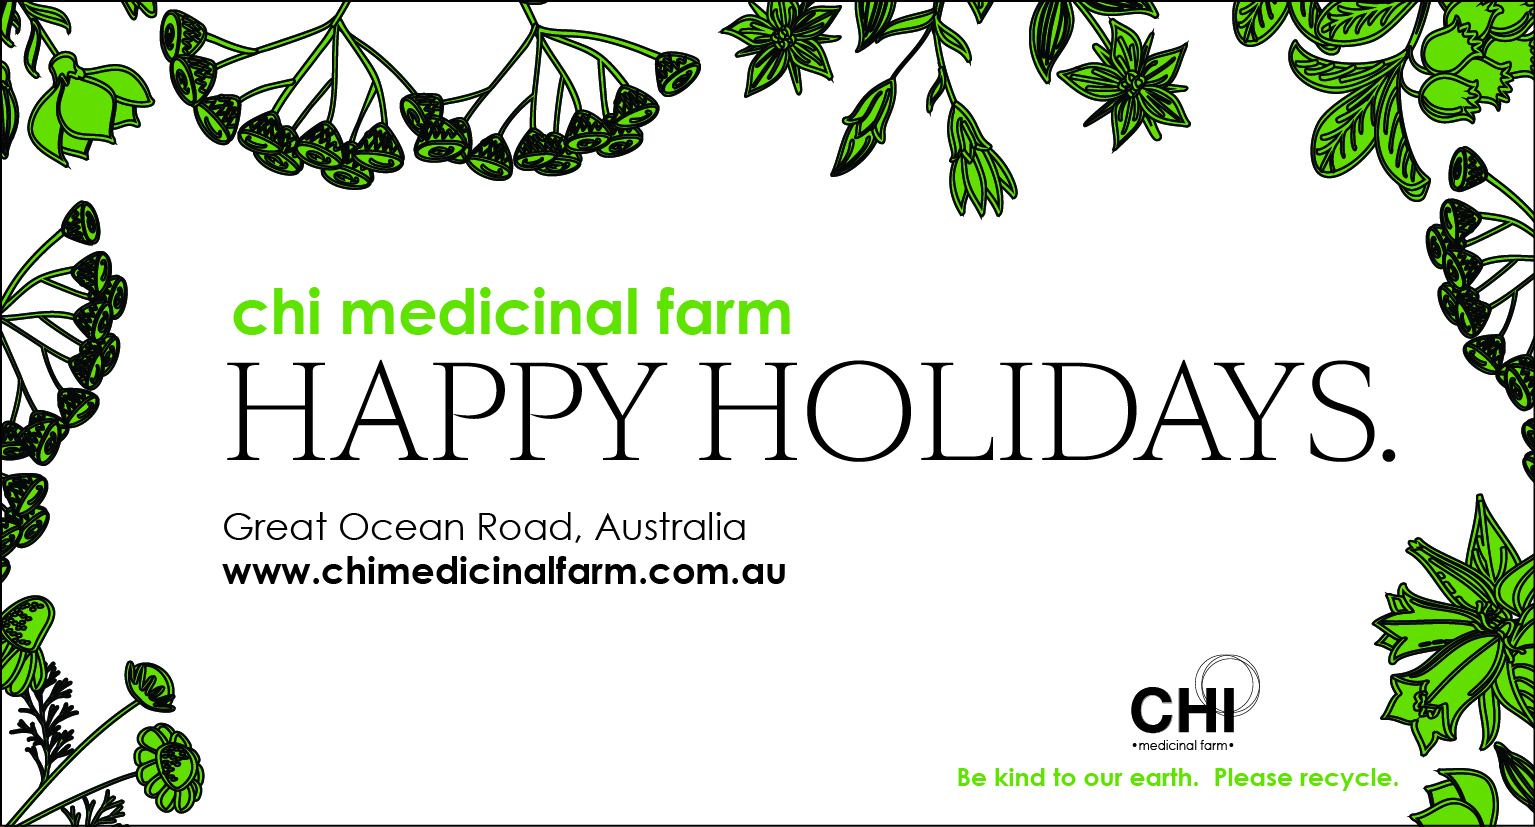 Chi Medicinal Farm Botanical Happy Holidays 2017.jpg